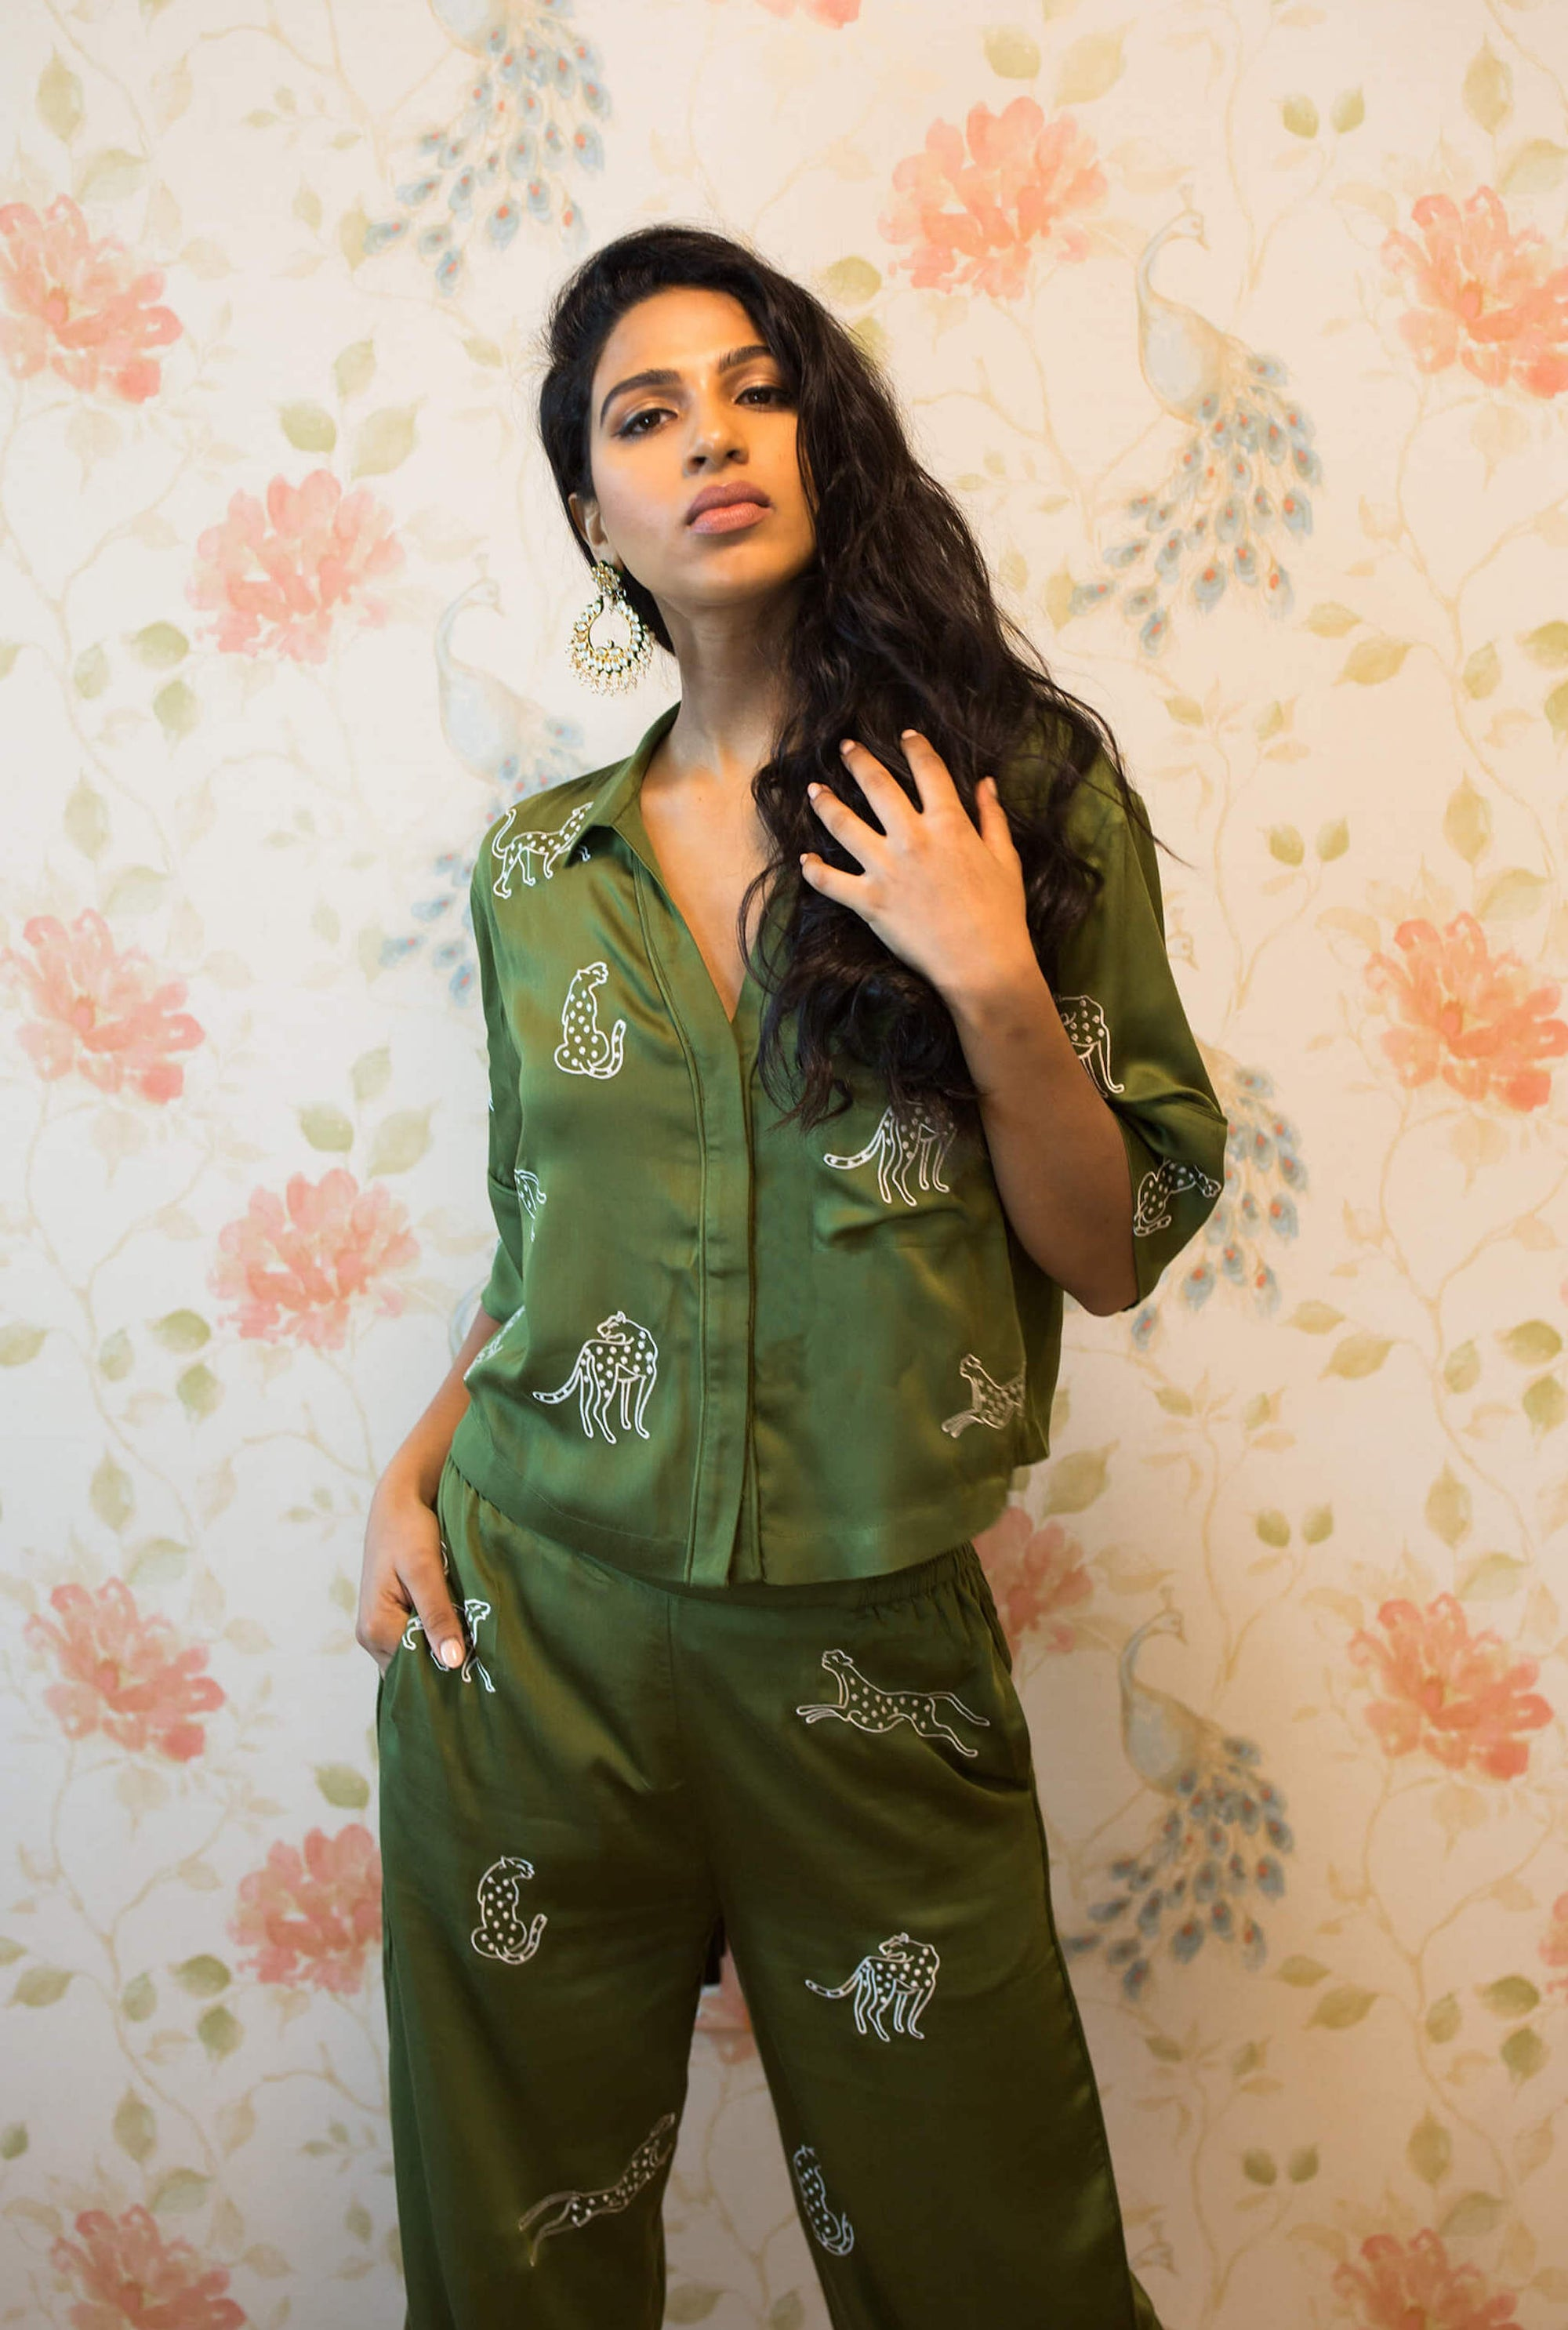 Green leopard embroidery pant and top pajama or loungewear set